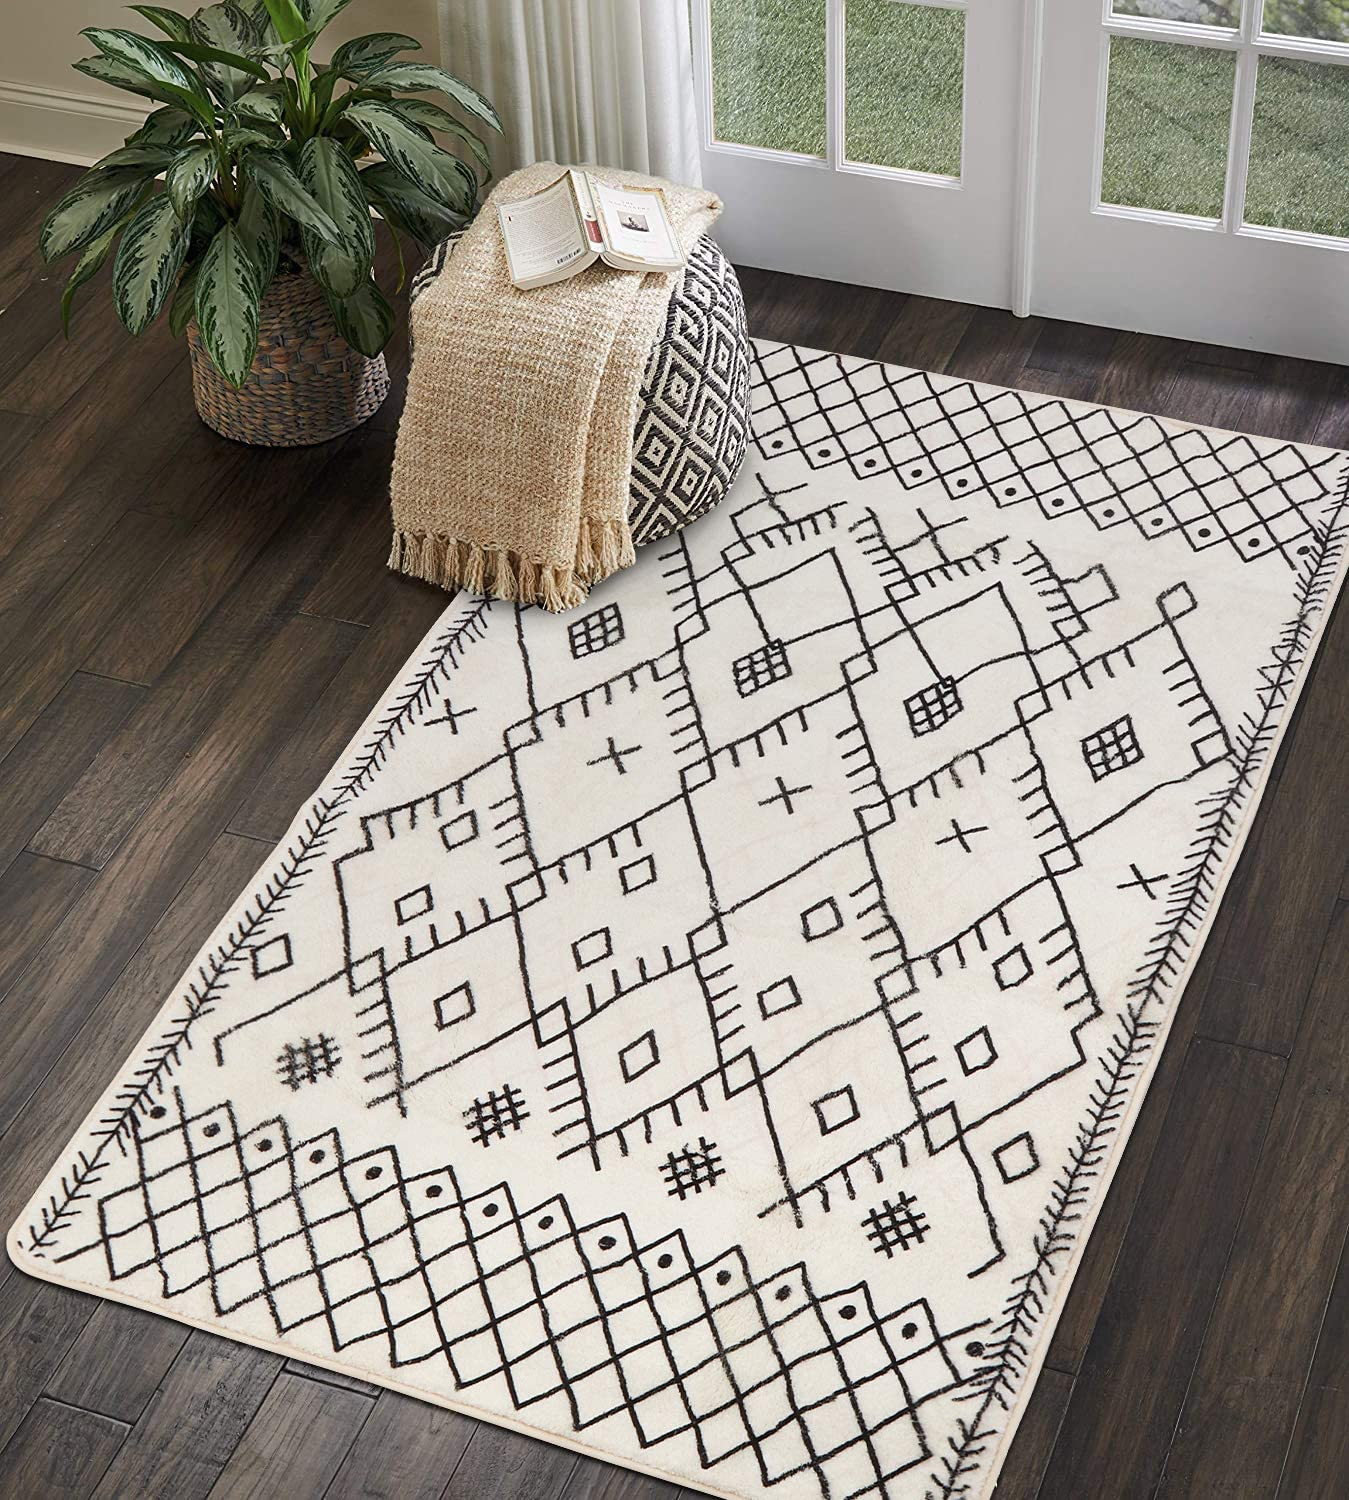 Amazon Com Uphome Boho Geometric Area Rug 3 X 5 Velvet Distressed Accent Tribal Throw Rugs Modern Moroccan Trellis Floor Carpet For Living Room Bedroom Laundry Nursery Decor Black And Beige Home Kitchen